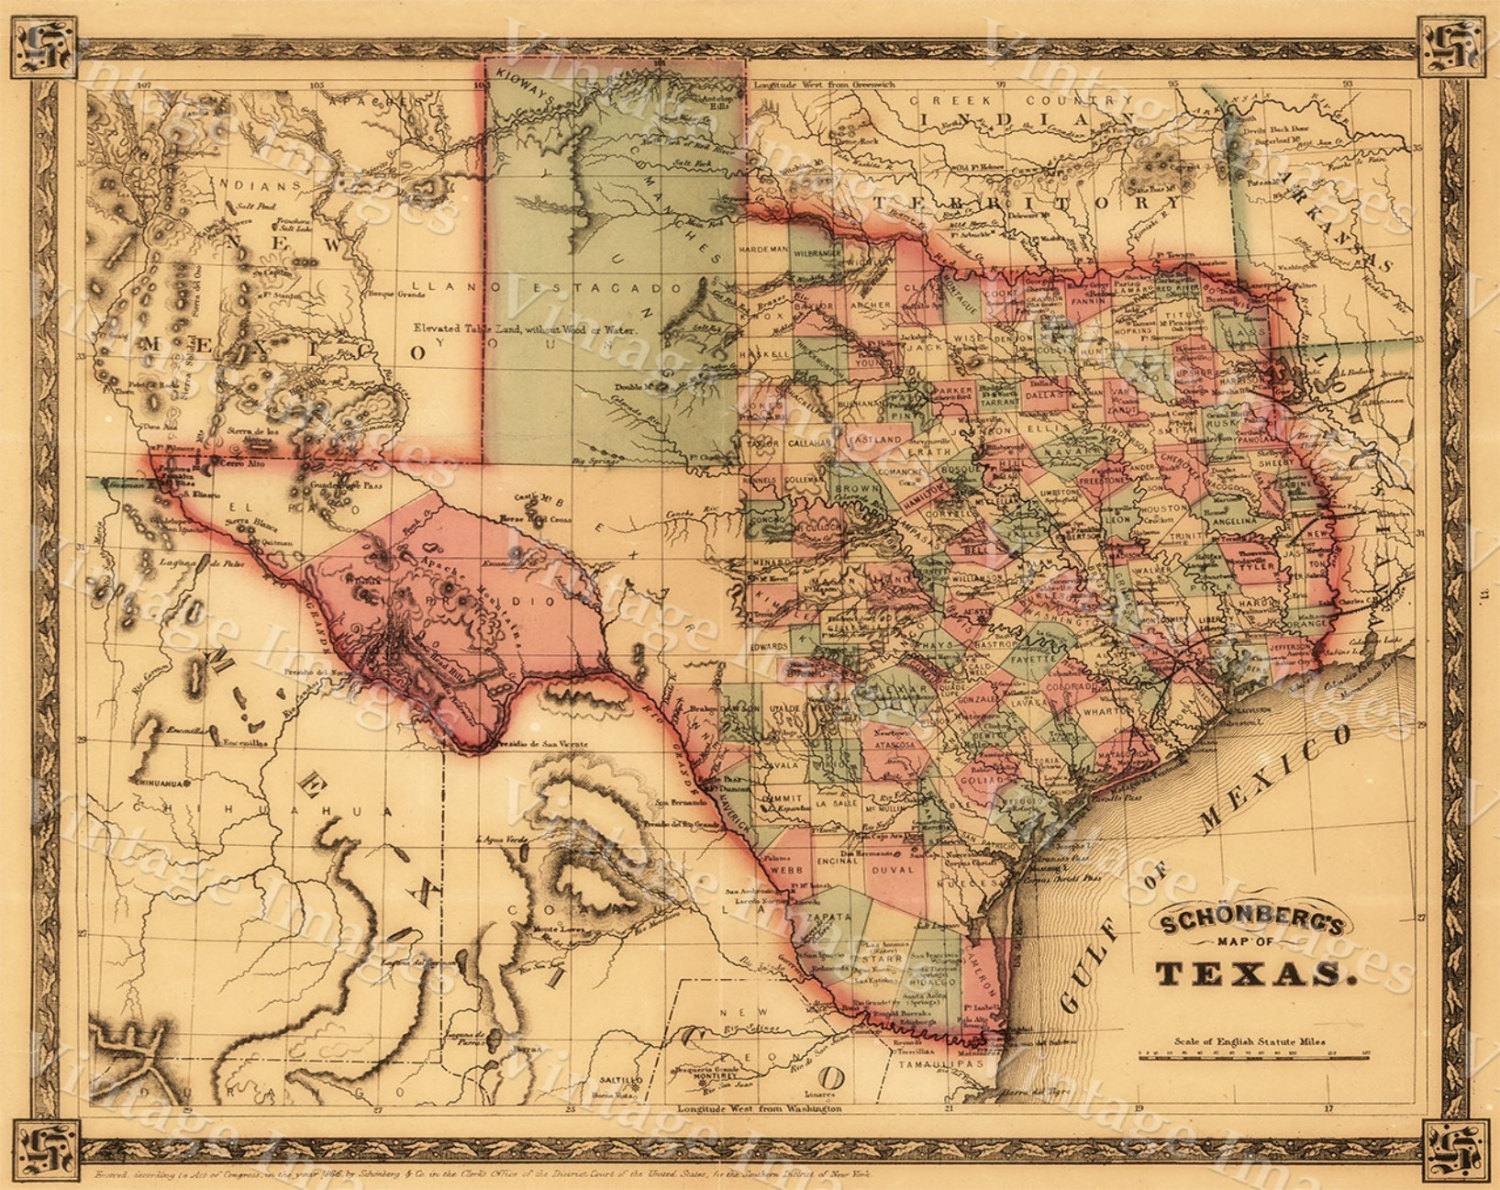 Texas Map Giant 1866 Old Texas Map Old West Map Antique | Etsy - Texas Historical Maps For Sale